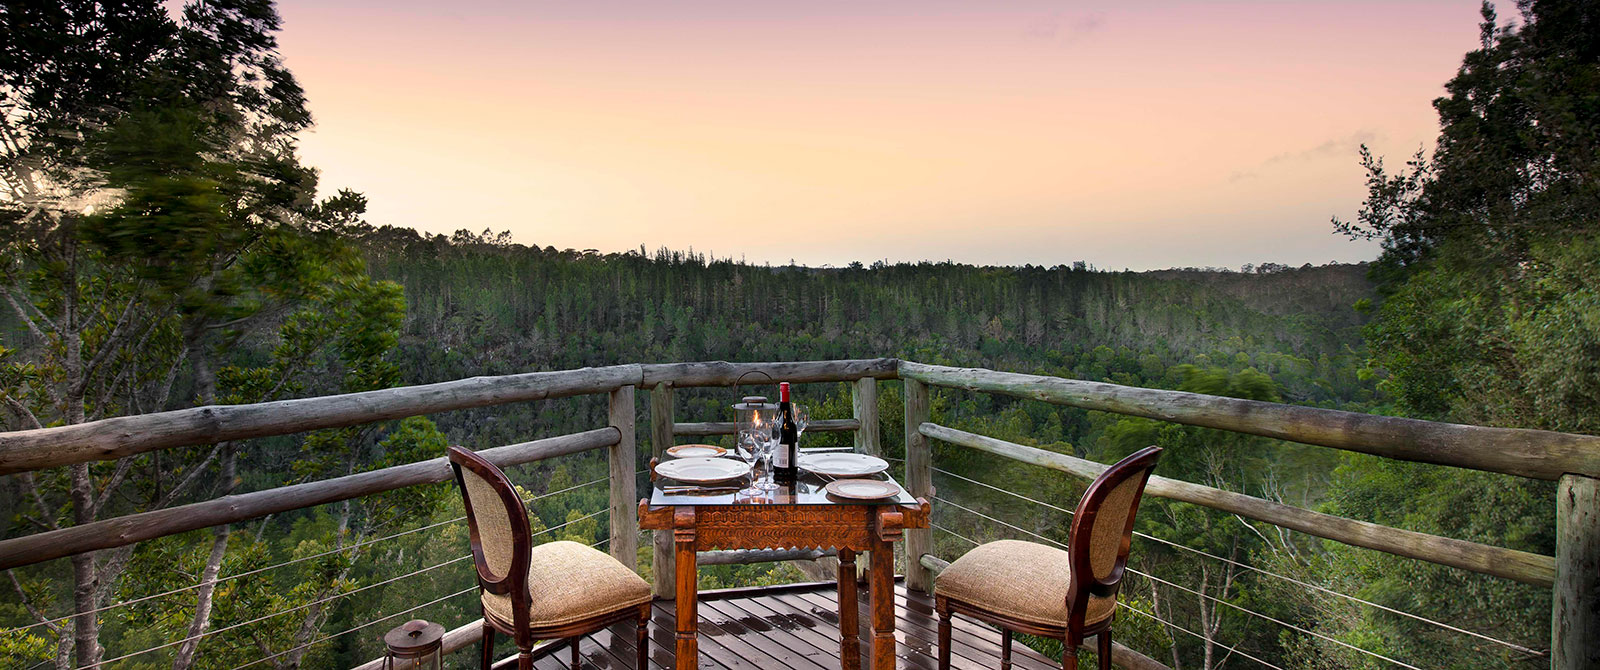 South Africa Garden Route Package - Dining at Tsala Treetop Lodge South Africa